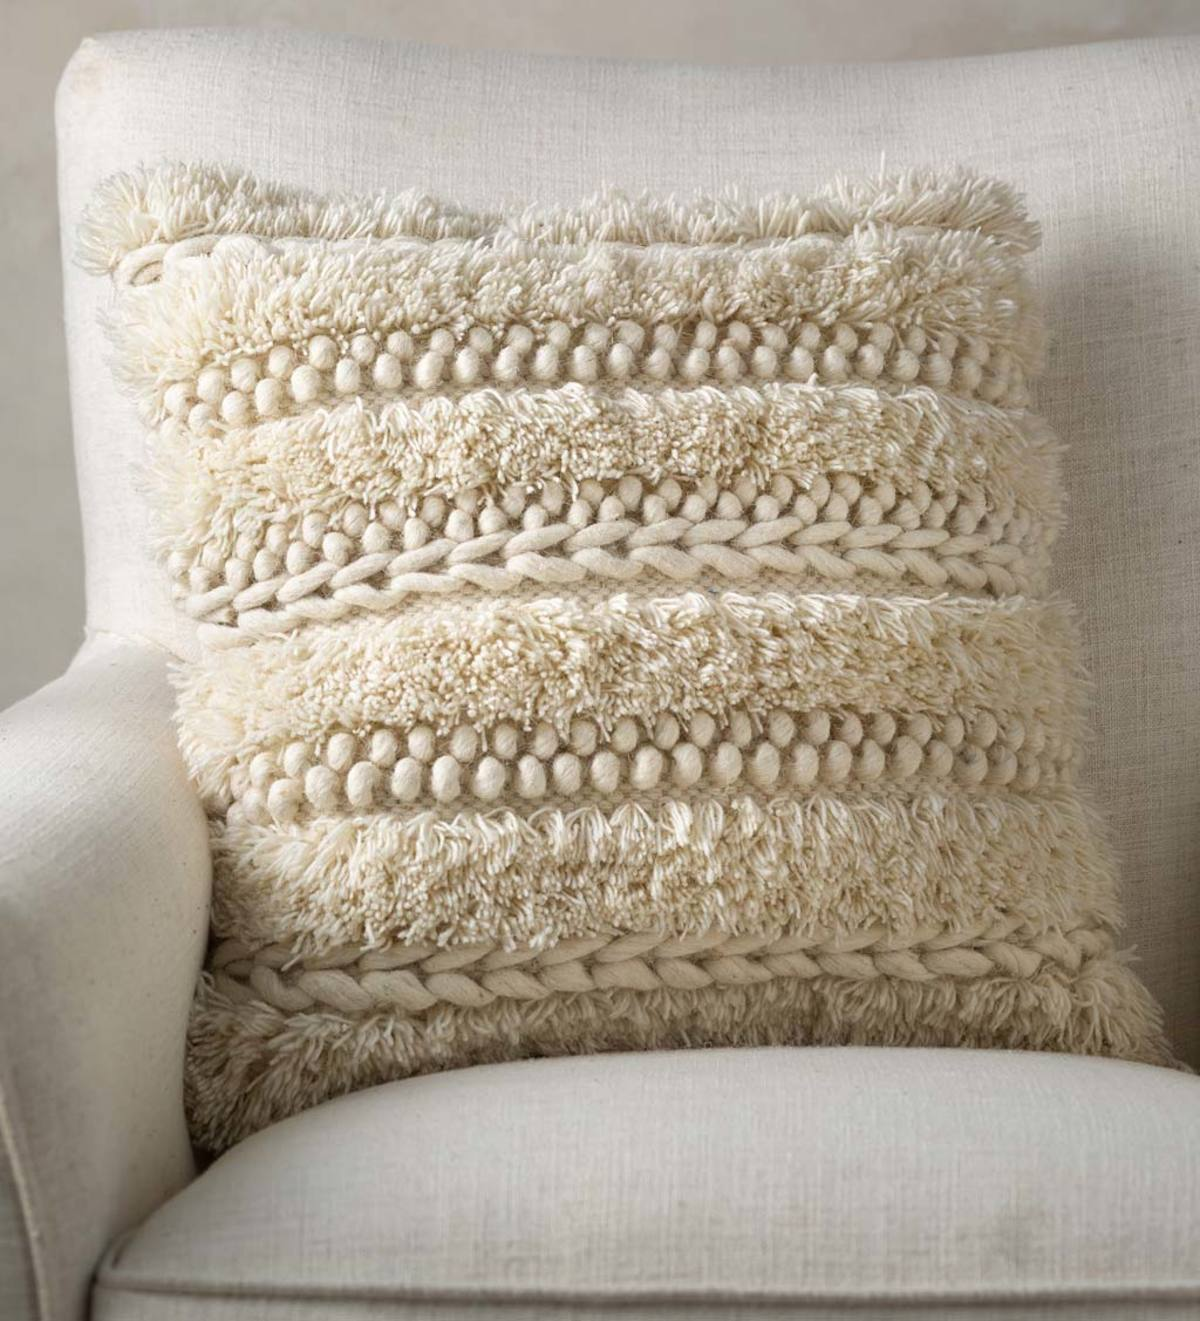 Woven Boho Textured Throw Pillow Cream Pebble Vivaterra